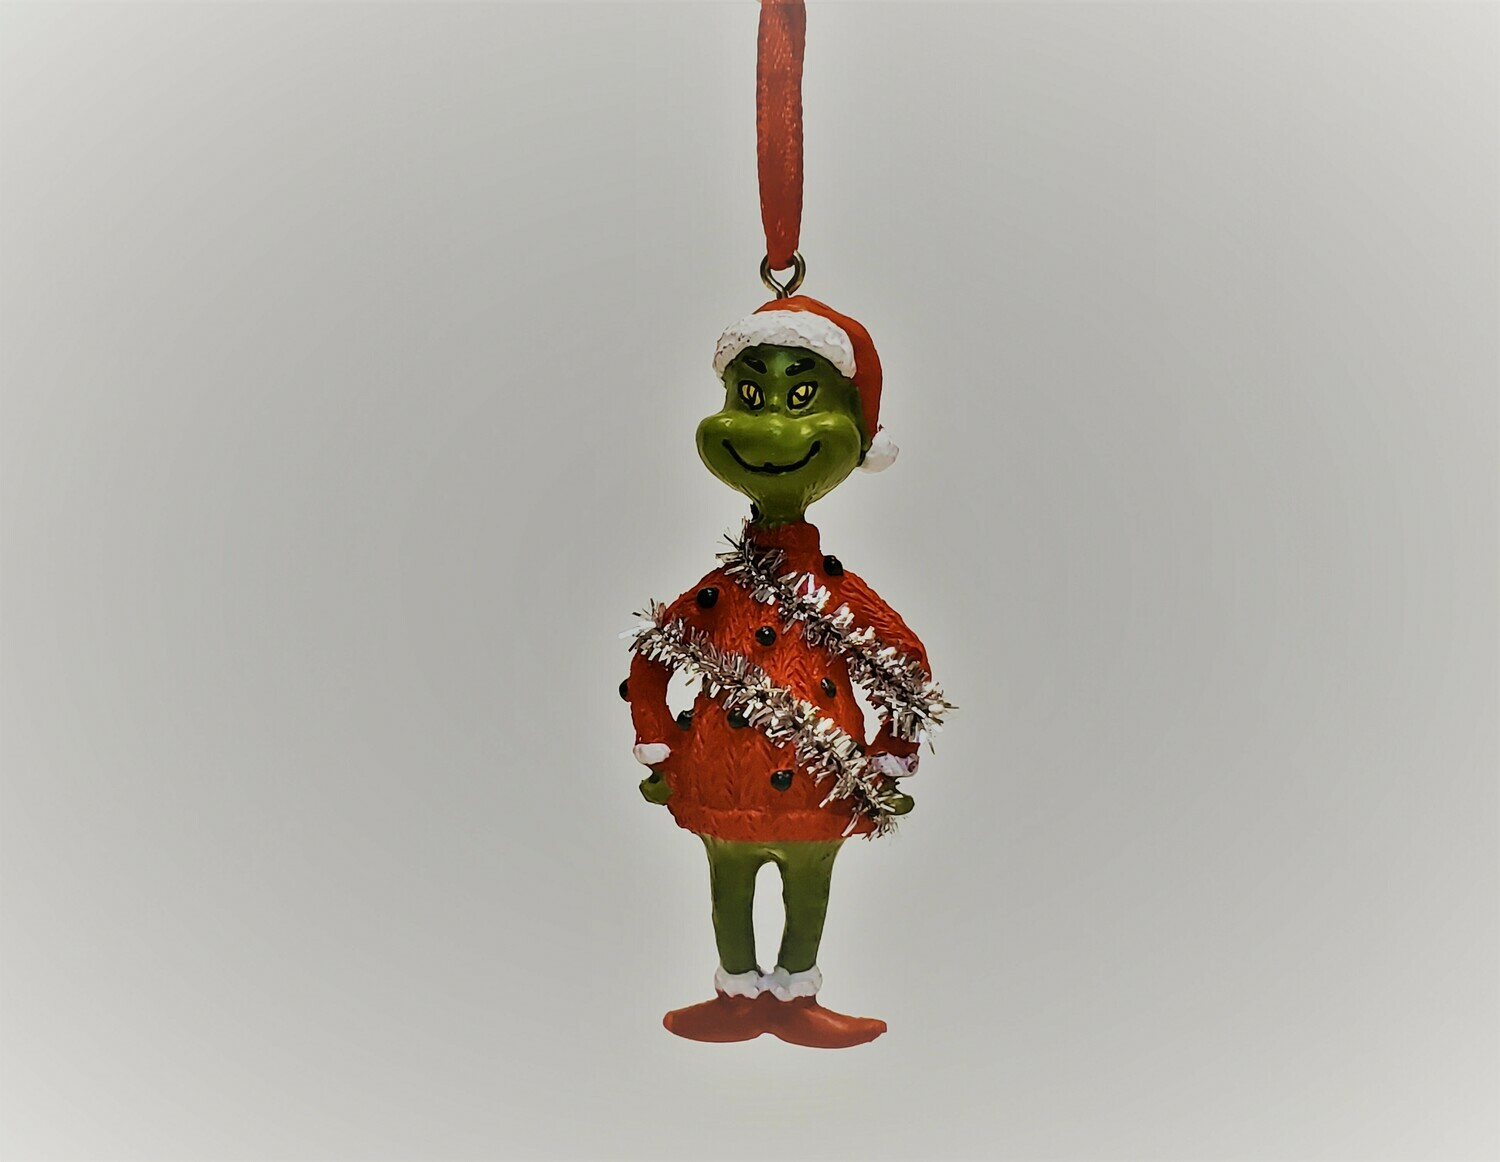 The Grinch in a Sparkly Sweater